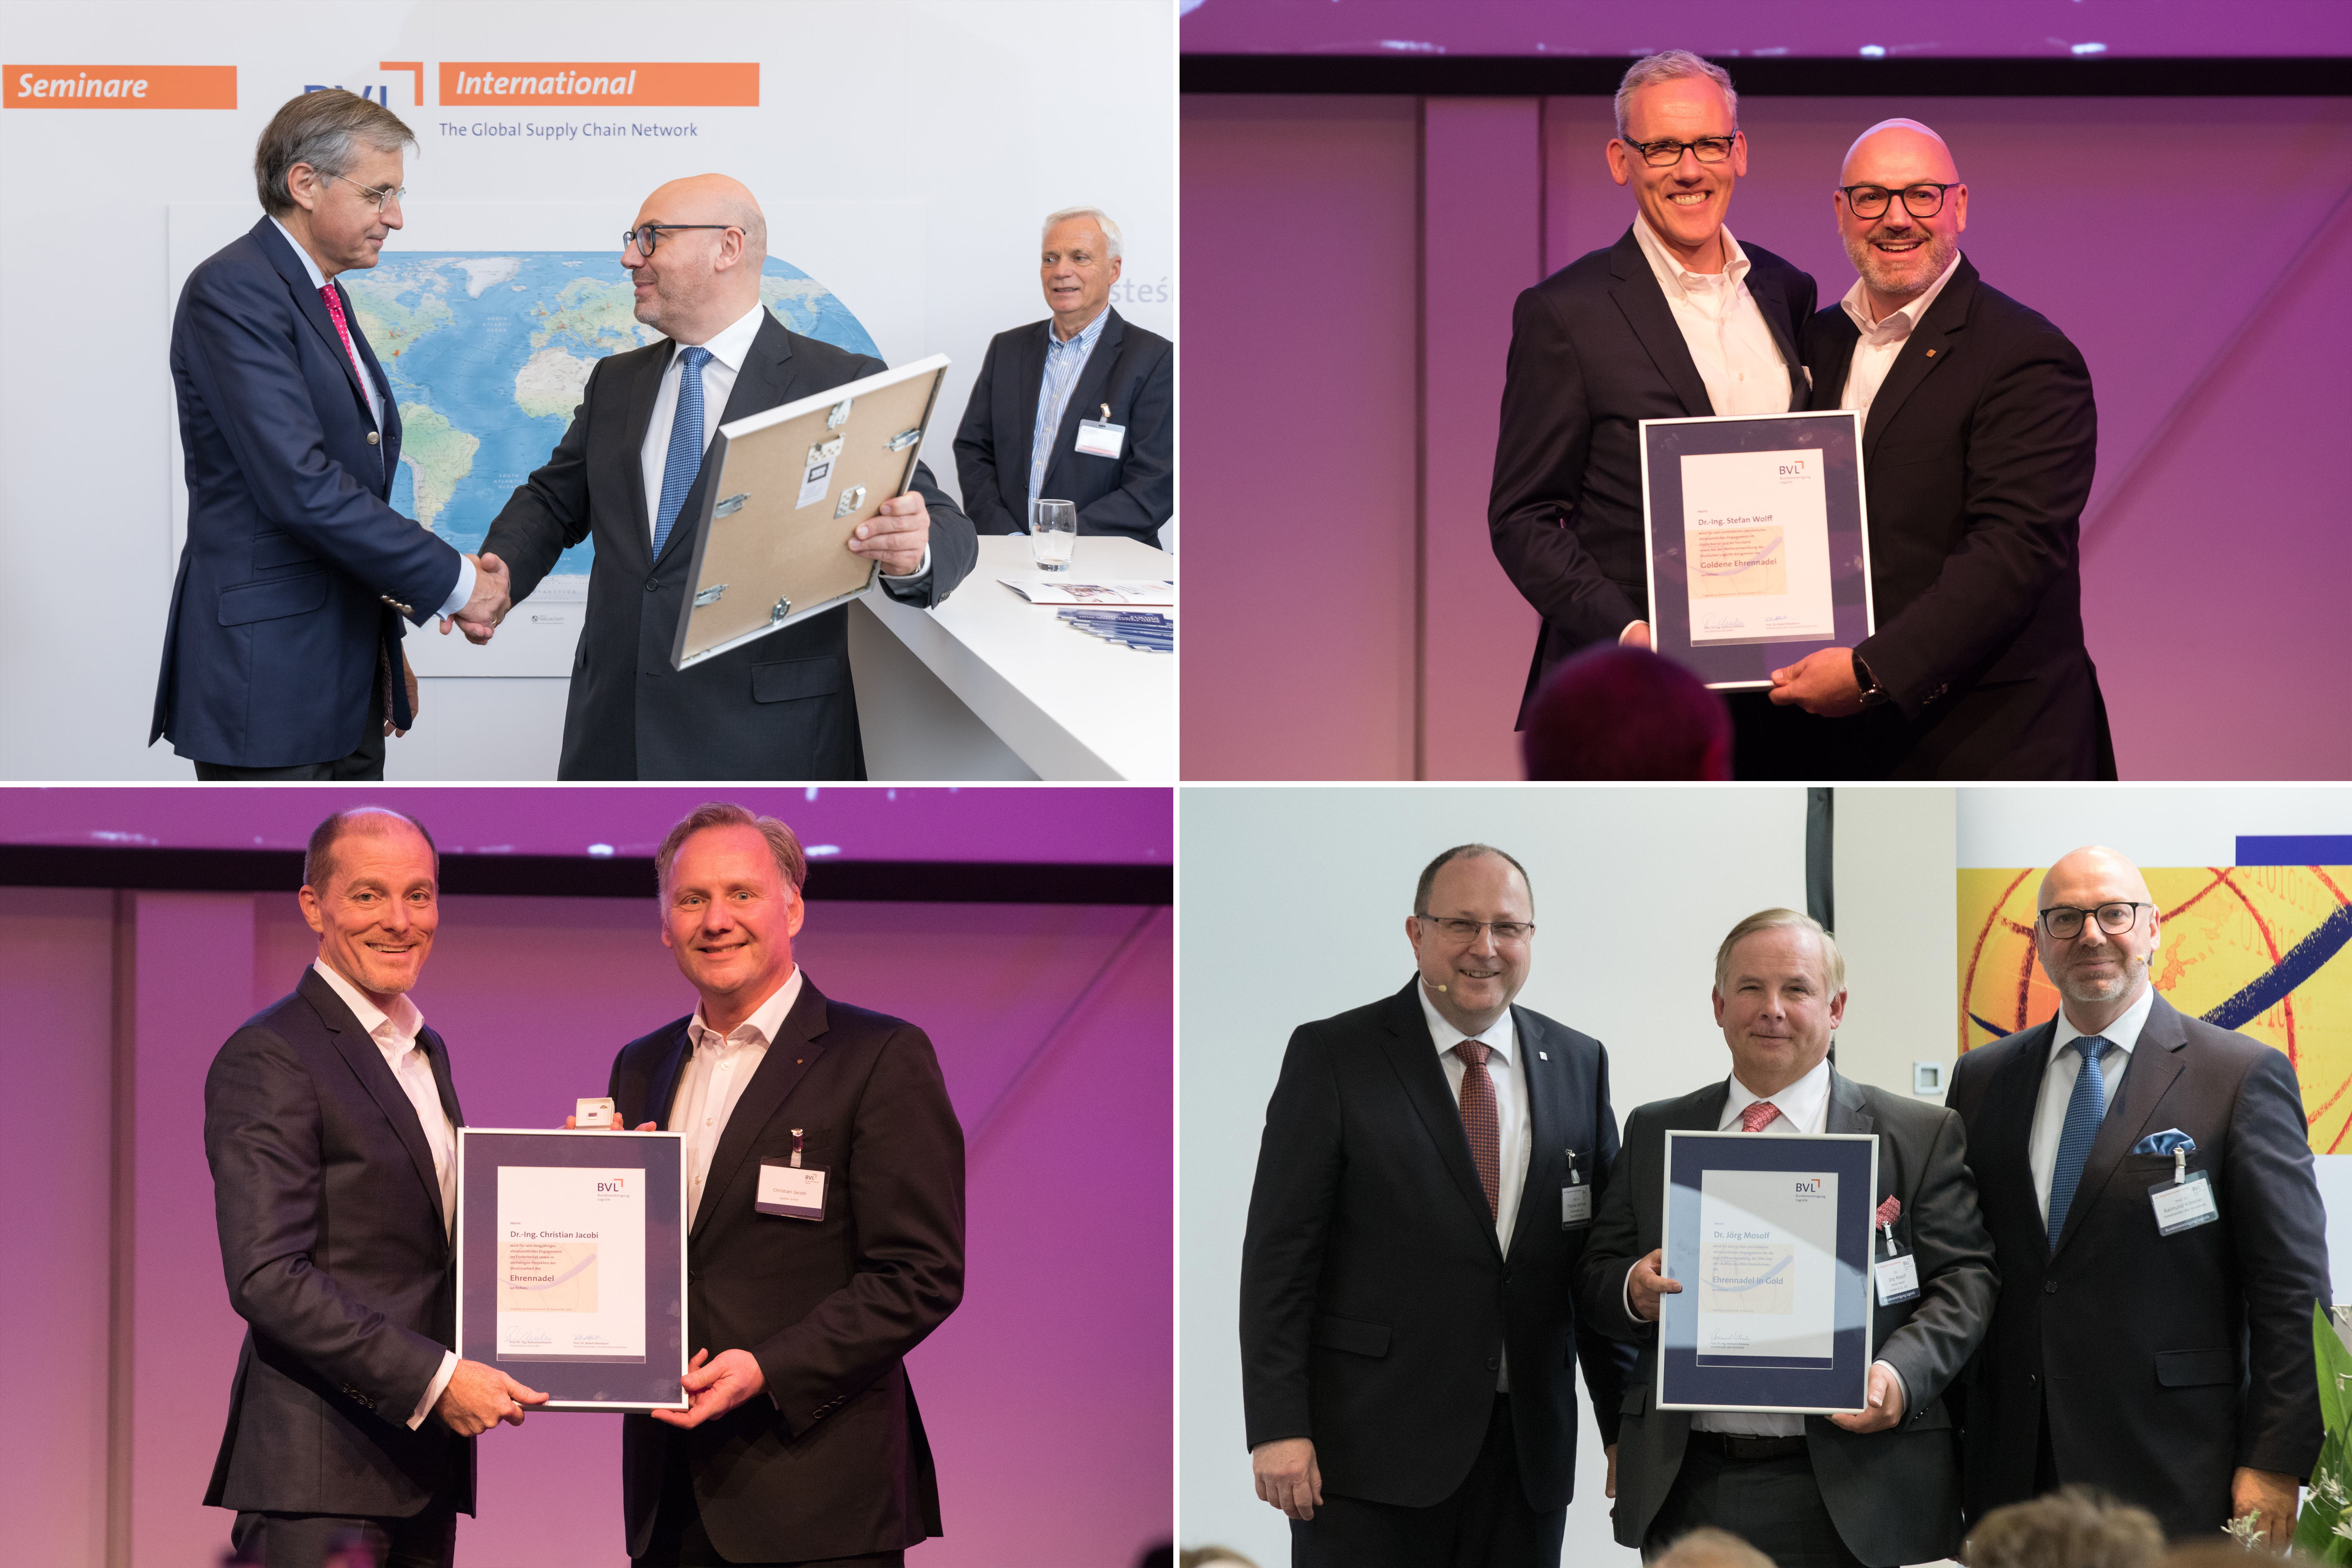 The Board recognised the efforts of long-standing Board member Dr. Ottmar Gast (photo top left), who was named an honorary member for life, and Treasurer Dr.-Ing. Stefan Wolff (photo top right), who was presented with the badge of honour in gold. The badge of honour was presented to the Chairman of the BVL Research Council, Dr. Christian Jacobi (photo bottom left), and Dr. Jörg Mosolf, entrepreneur and member of the Research Council of DAV (photo bottom right).